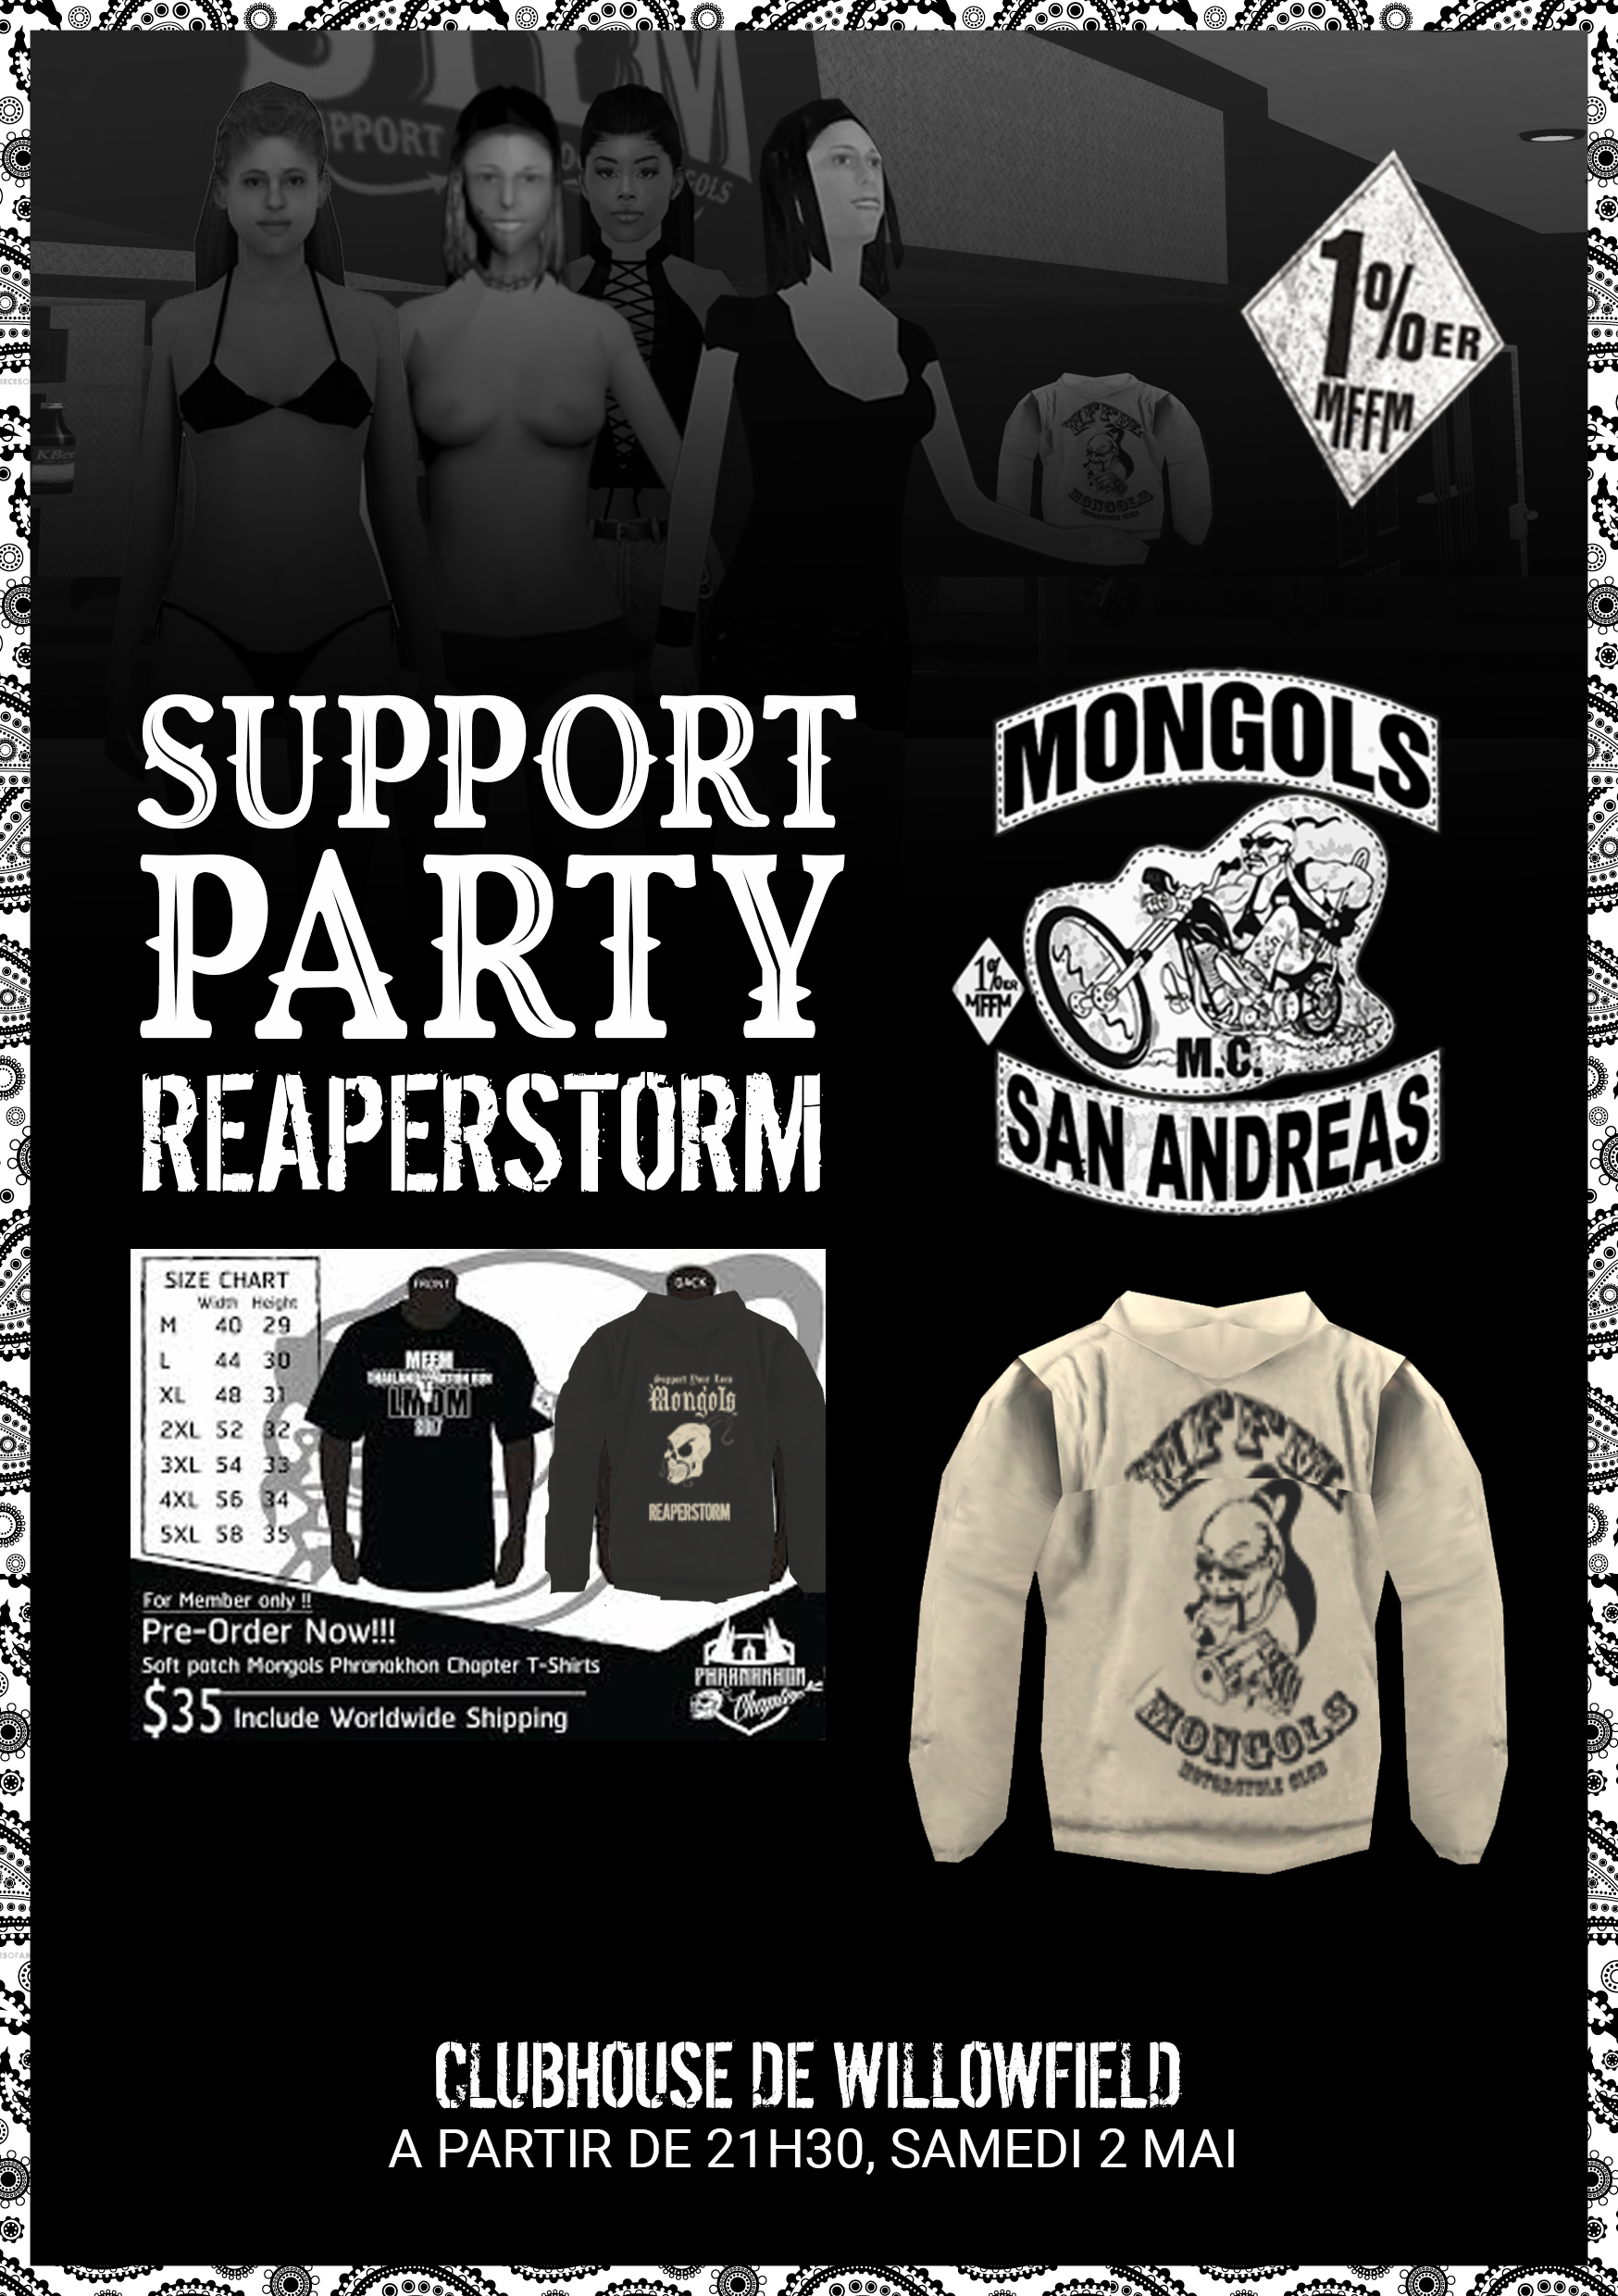 Support Party - Mongols Nation Motorcycle Club G6j2